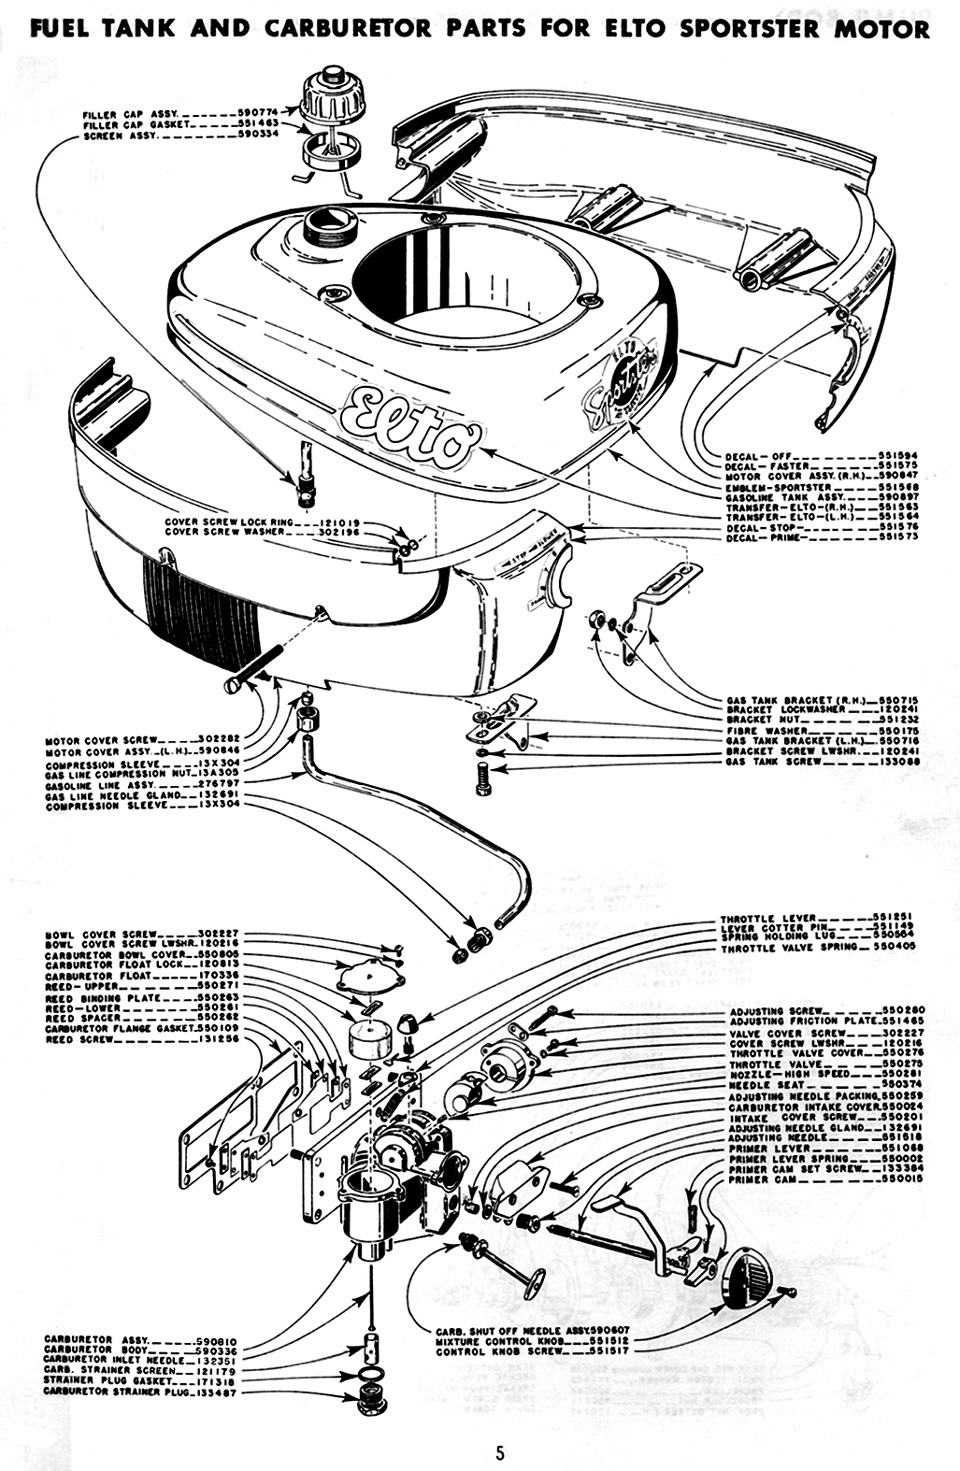 Honda Chf50 Wiring Diagram : 26 Wiring Diagram Images